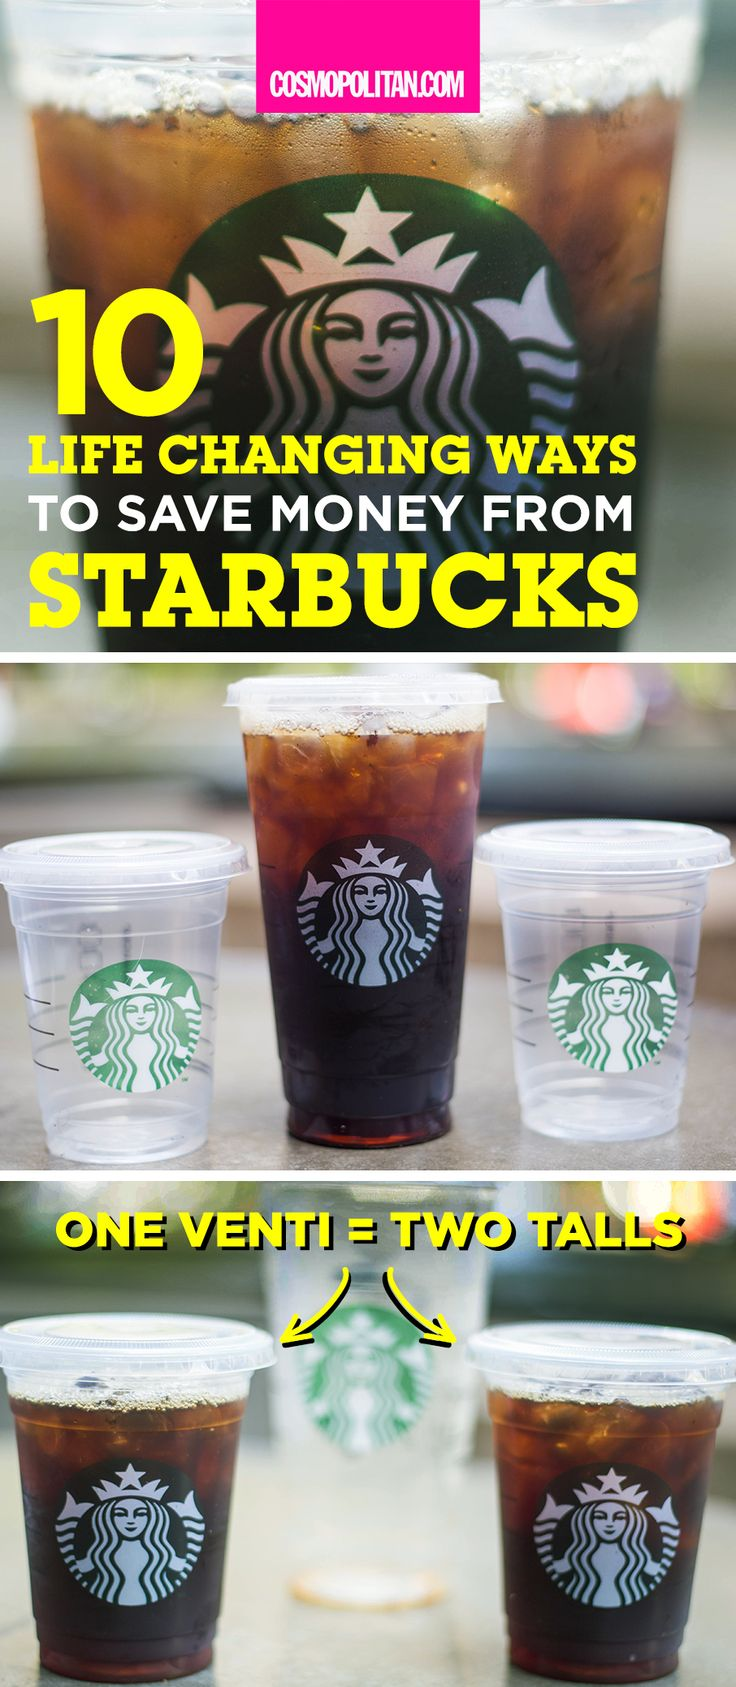 LIFE-CHANGING STARBUCKS HACKS: Save money and love your drink even more with these Starbucks tricks!